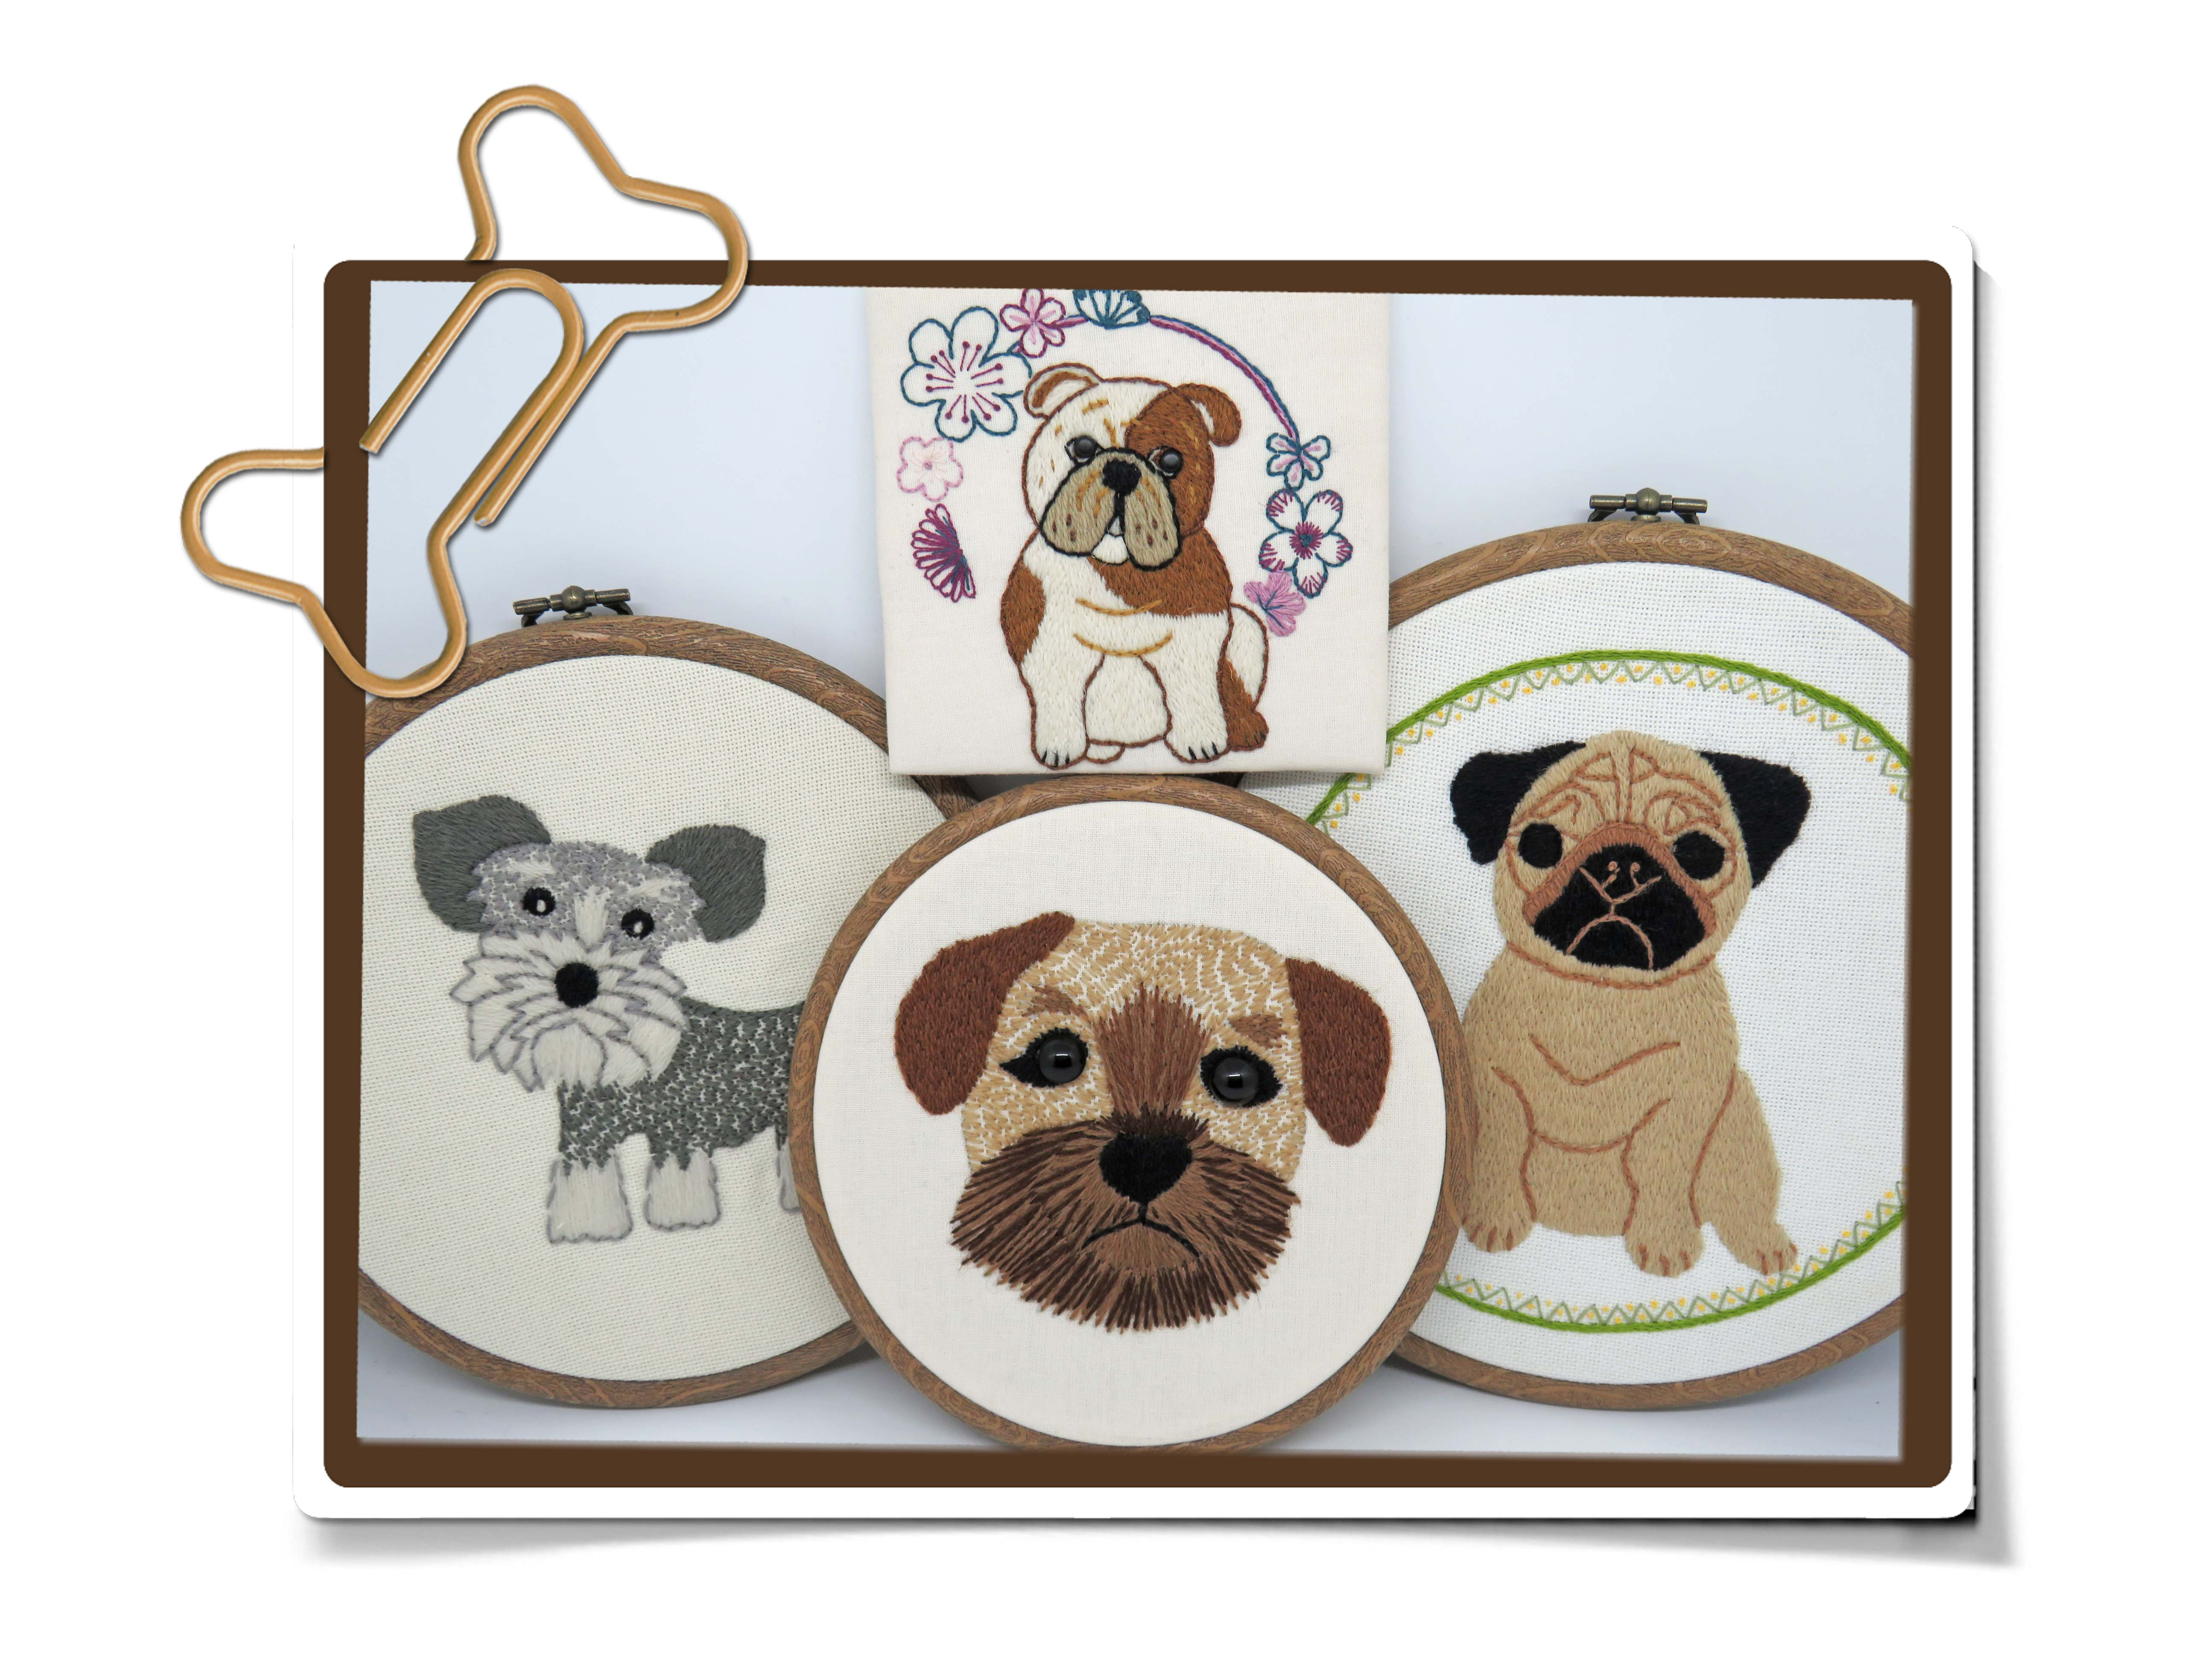 Dog embroidery patterns by stitchdoodles